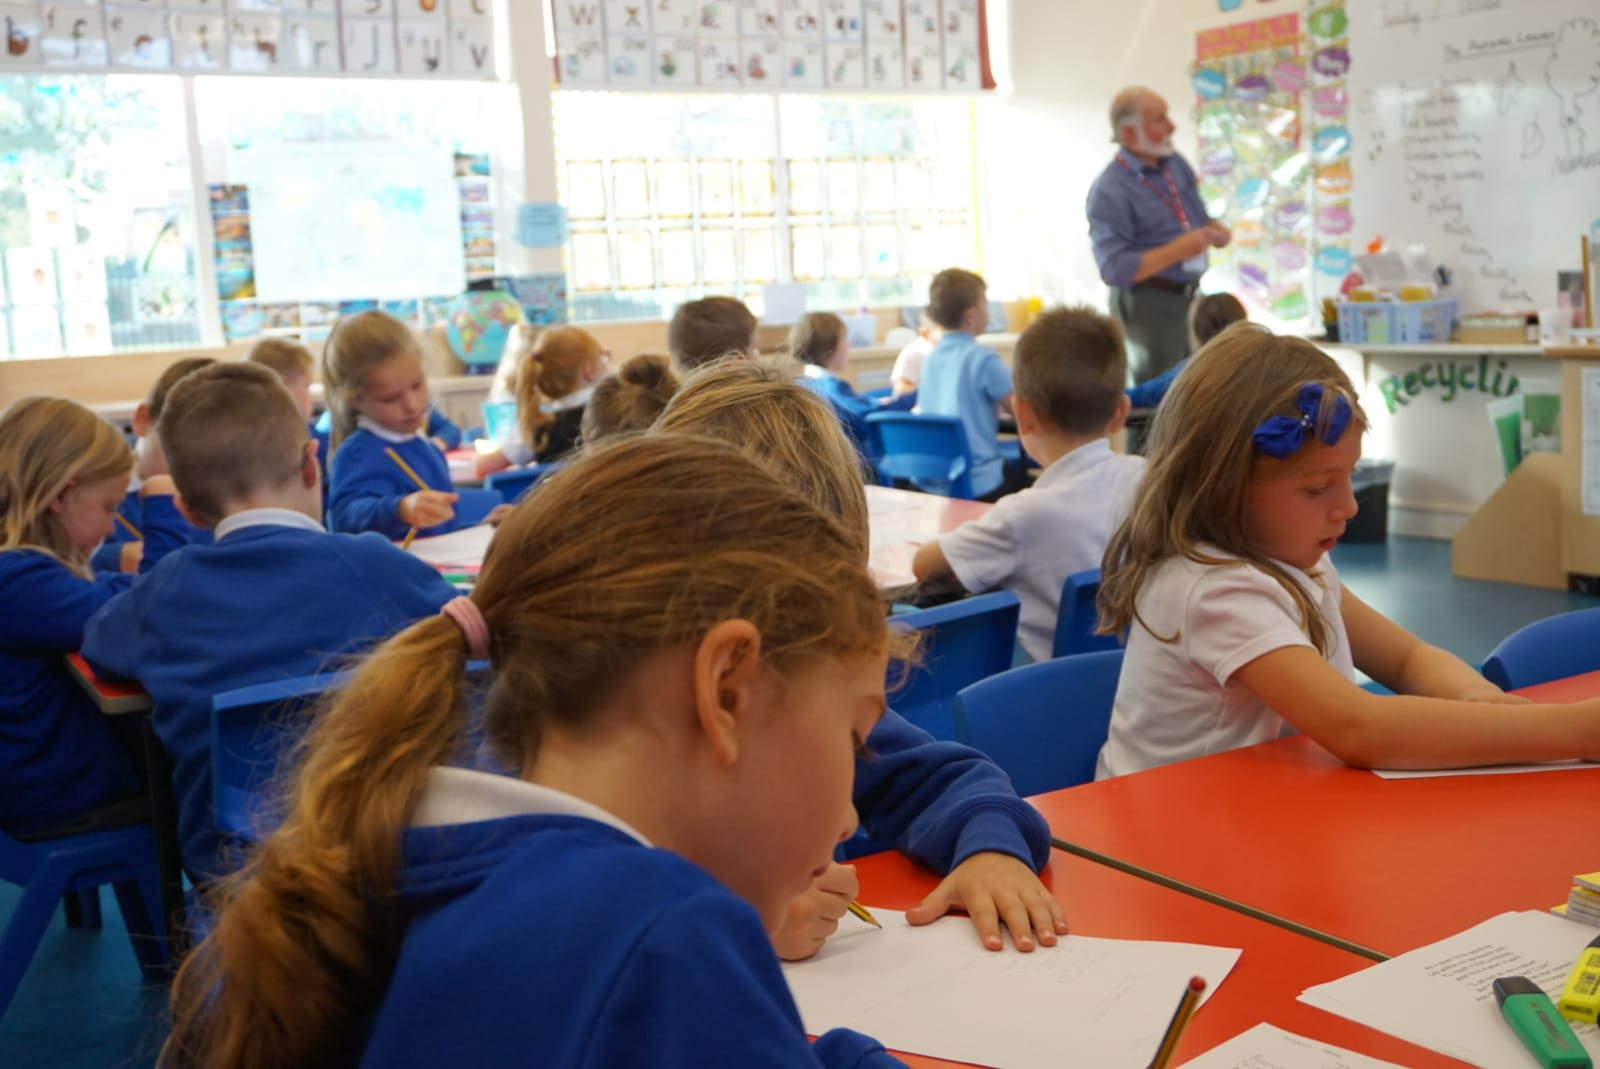 Award-winning author comes to Roseberry Primary School to celebrate national poetry day